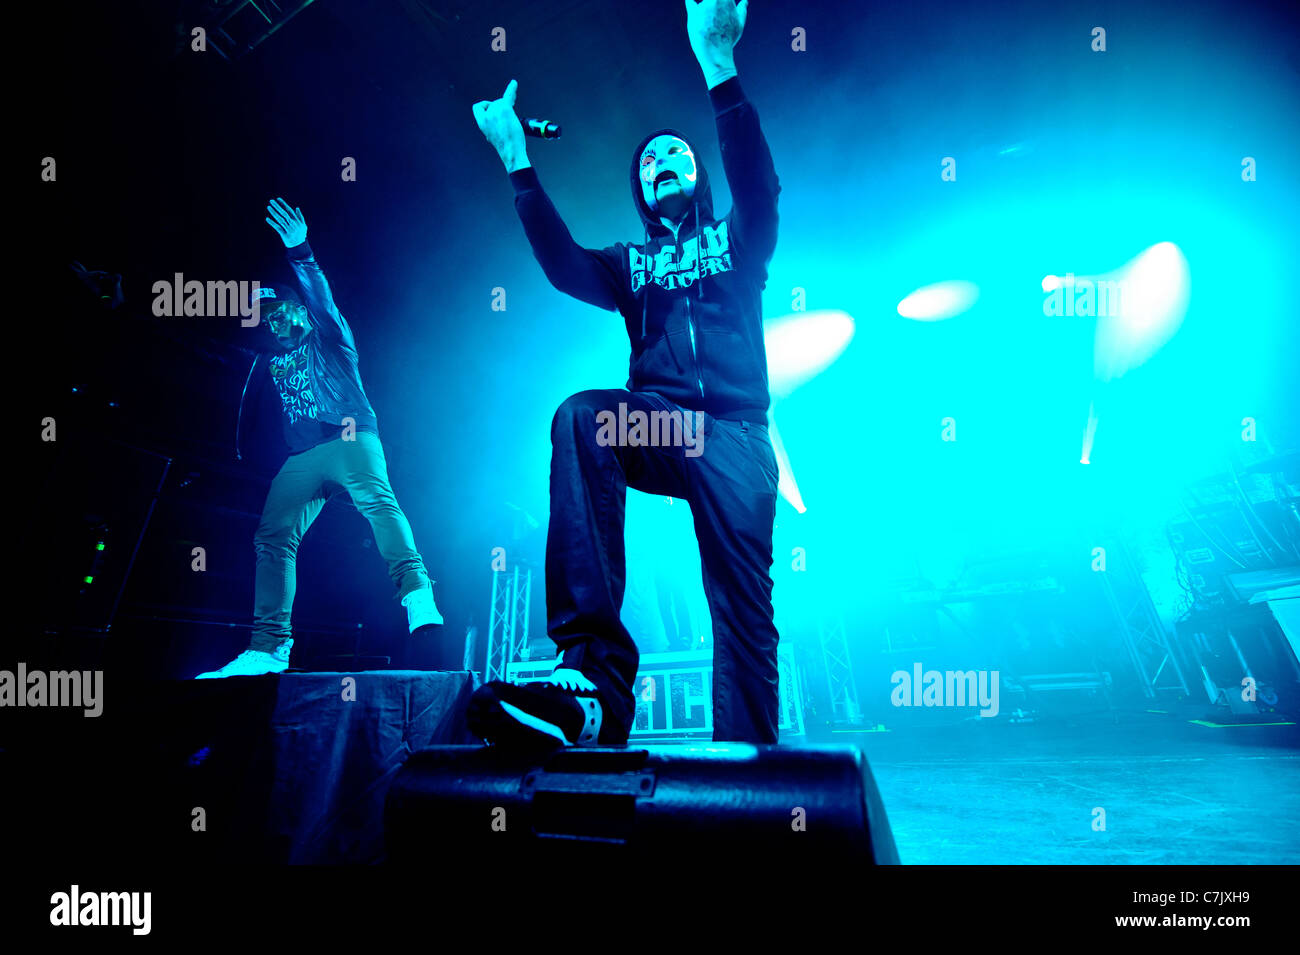 American rap rock band Hollywood Undead live at Sound Academy, Toronto, Canada on April 03, 2011 Stock Photo